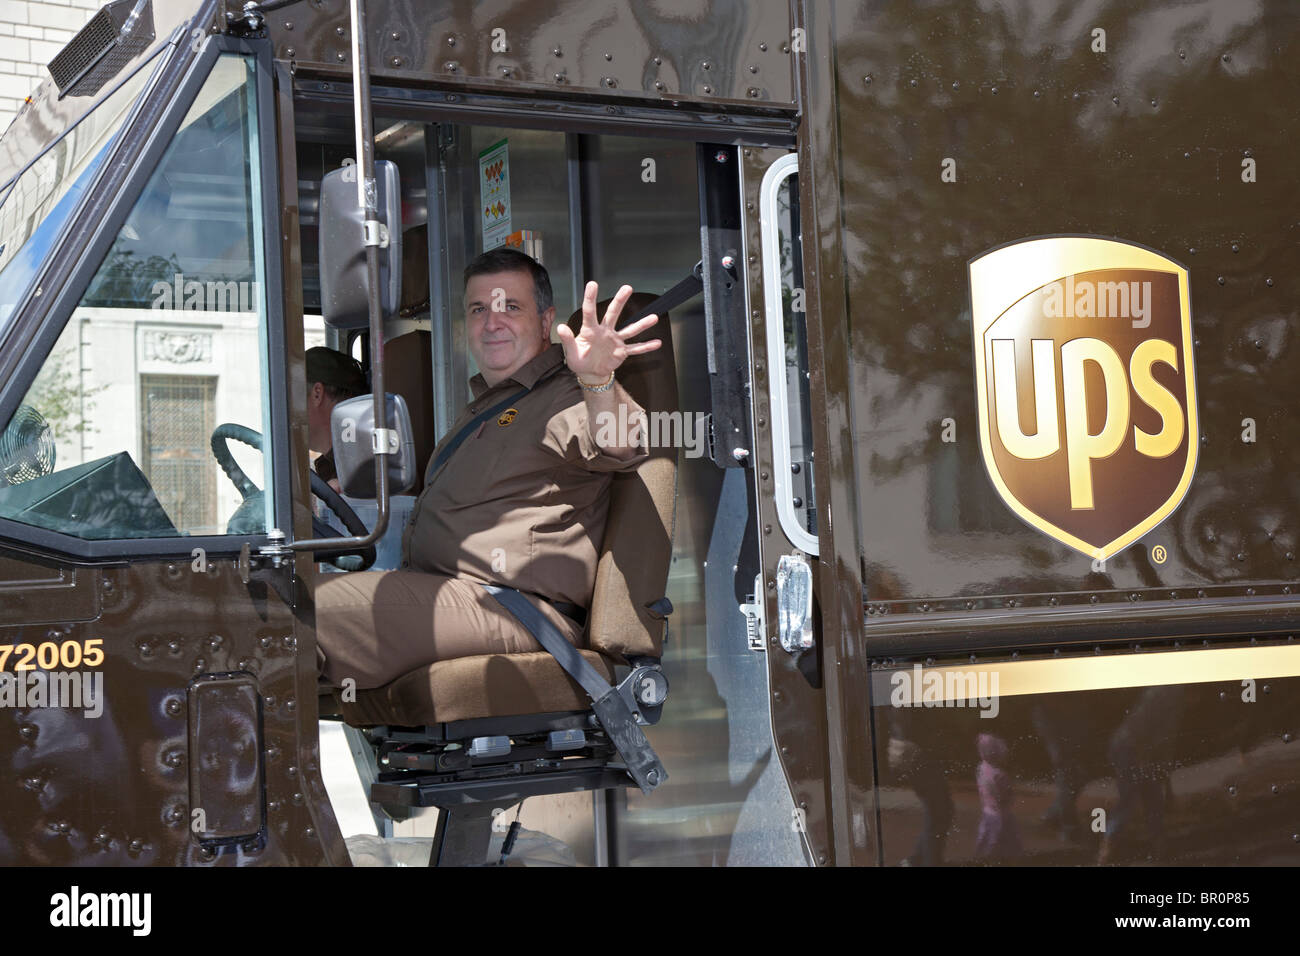 Indianapolis, Indiana - A United Parcel Service delivery truck in the Labor Day parade. - Stock Image